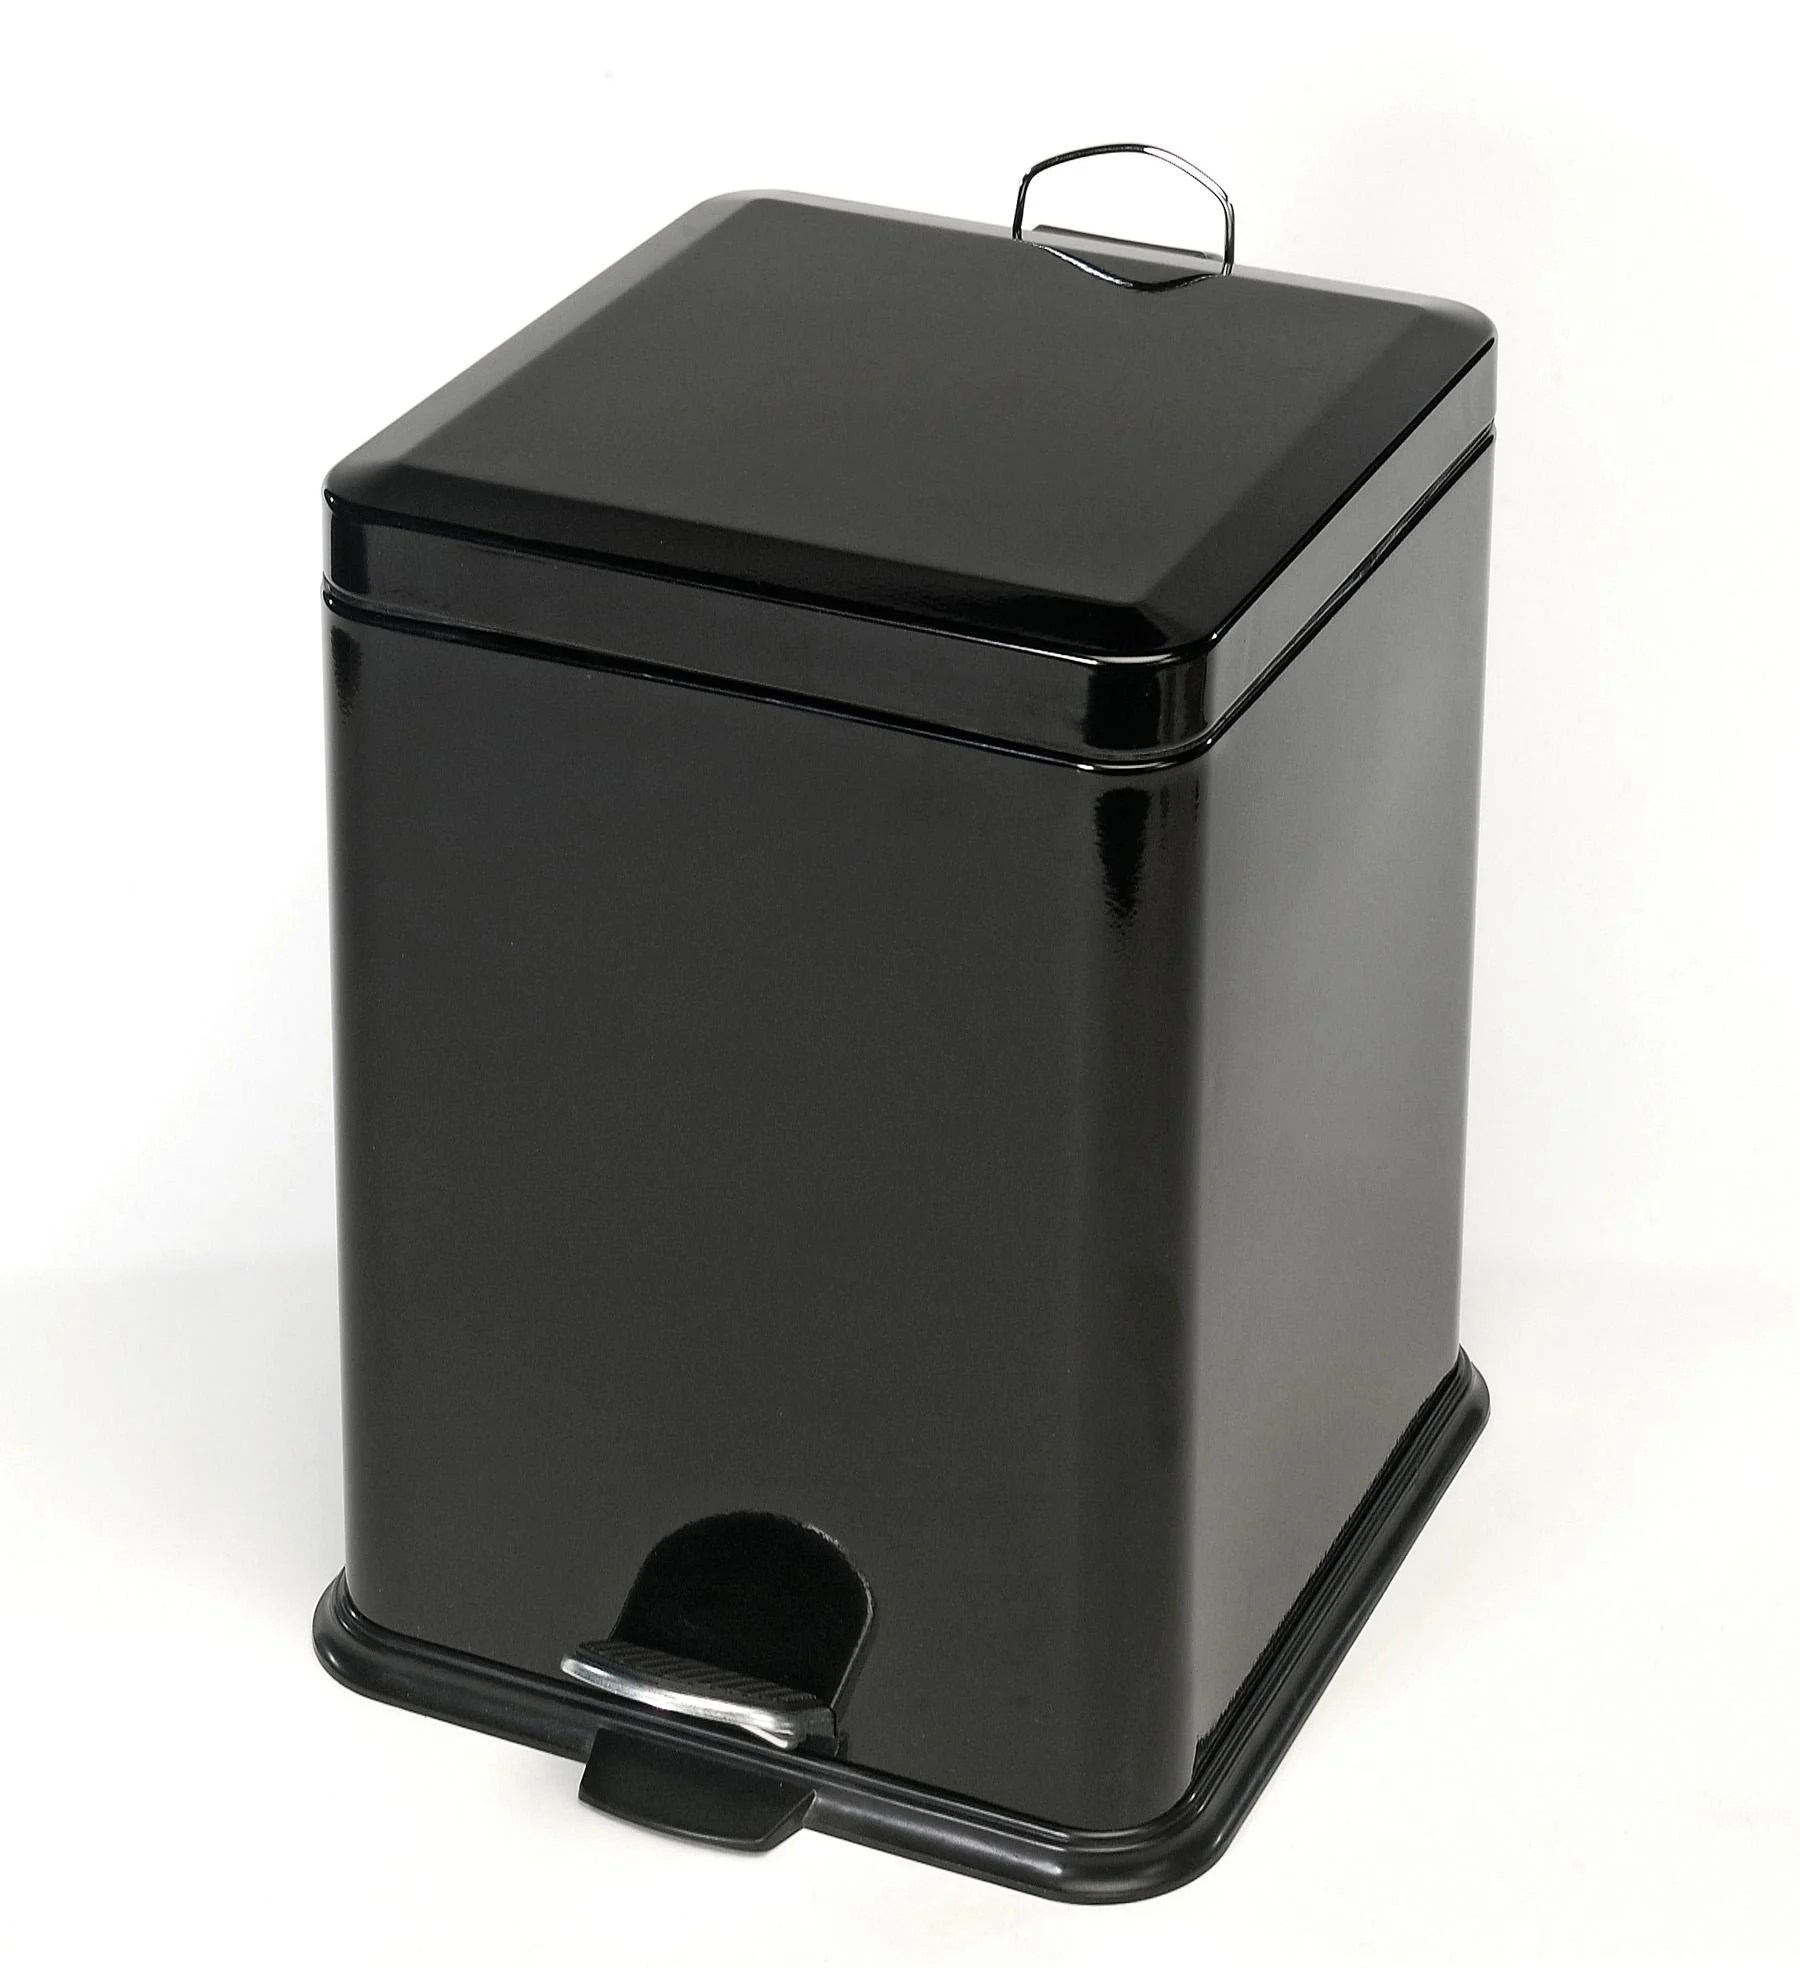 Black Metal Trash Can Black Steel 20 Liter Trash Can Free Shipping Today